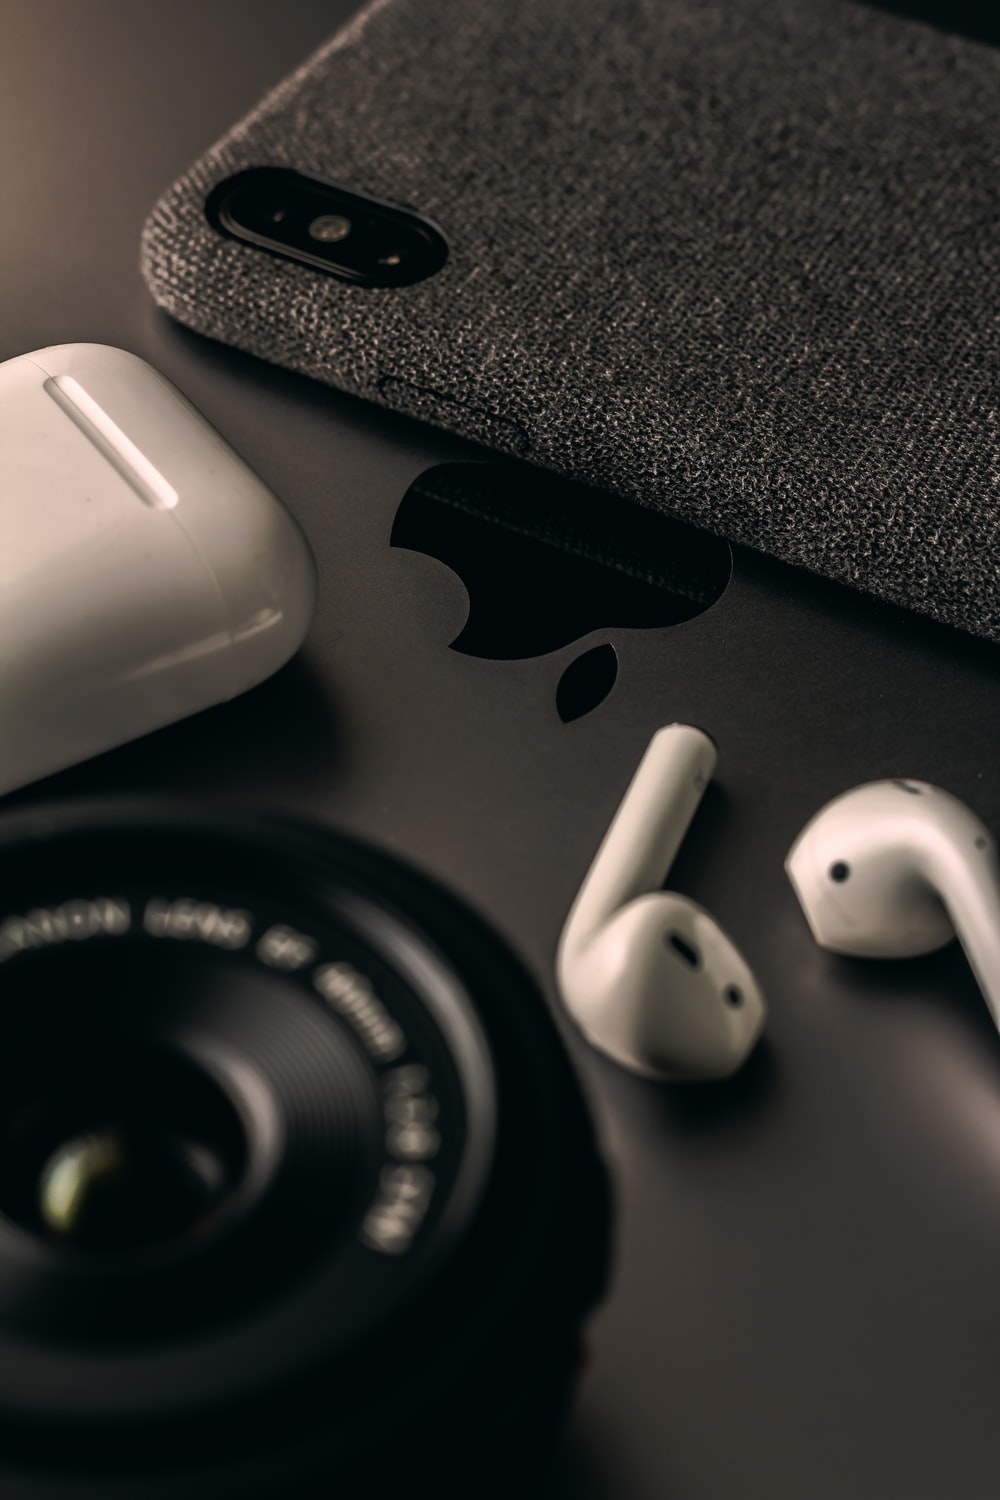 space gray iPhone X beside AirPods